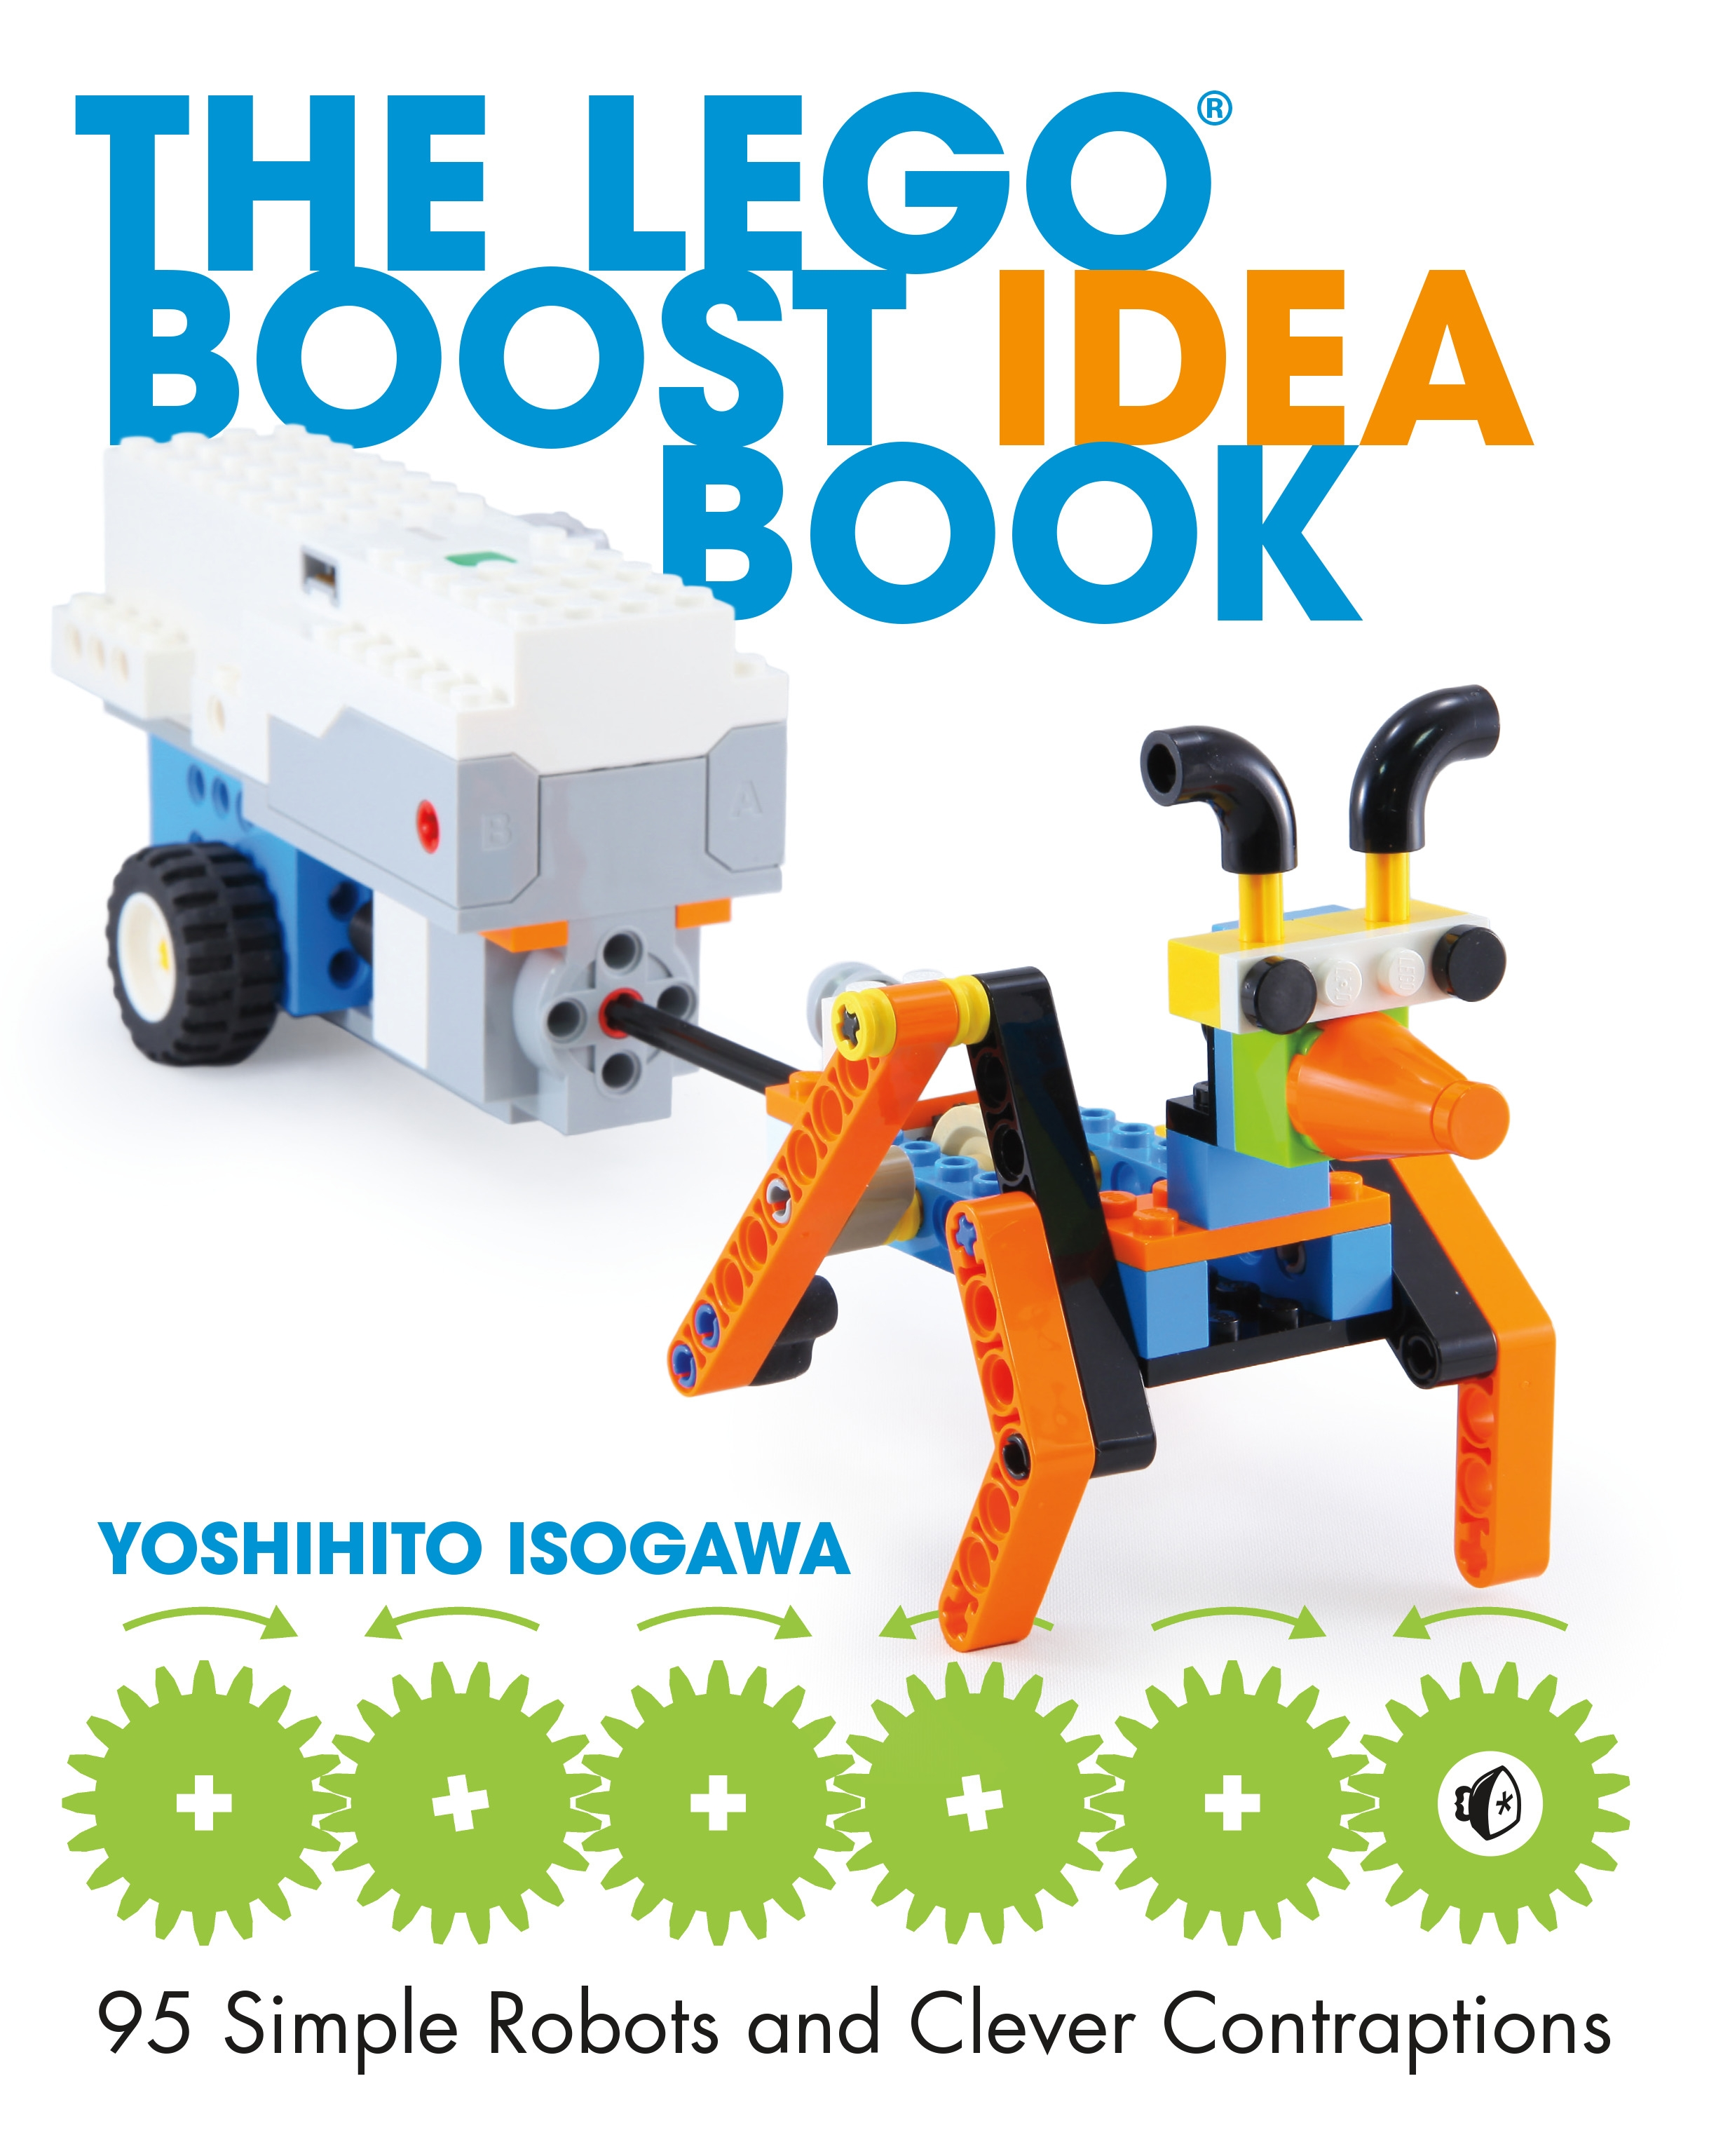 The Lego Boost Idea Book: 95 Simple Robots and Clever Contraptions by Yoshihito Isogawa, ISBN: 9781593279844